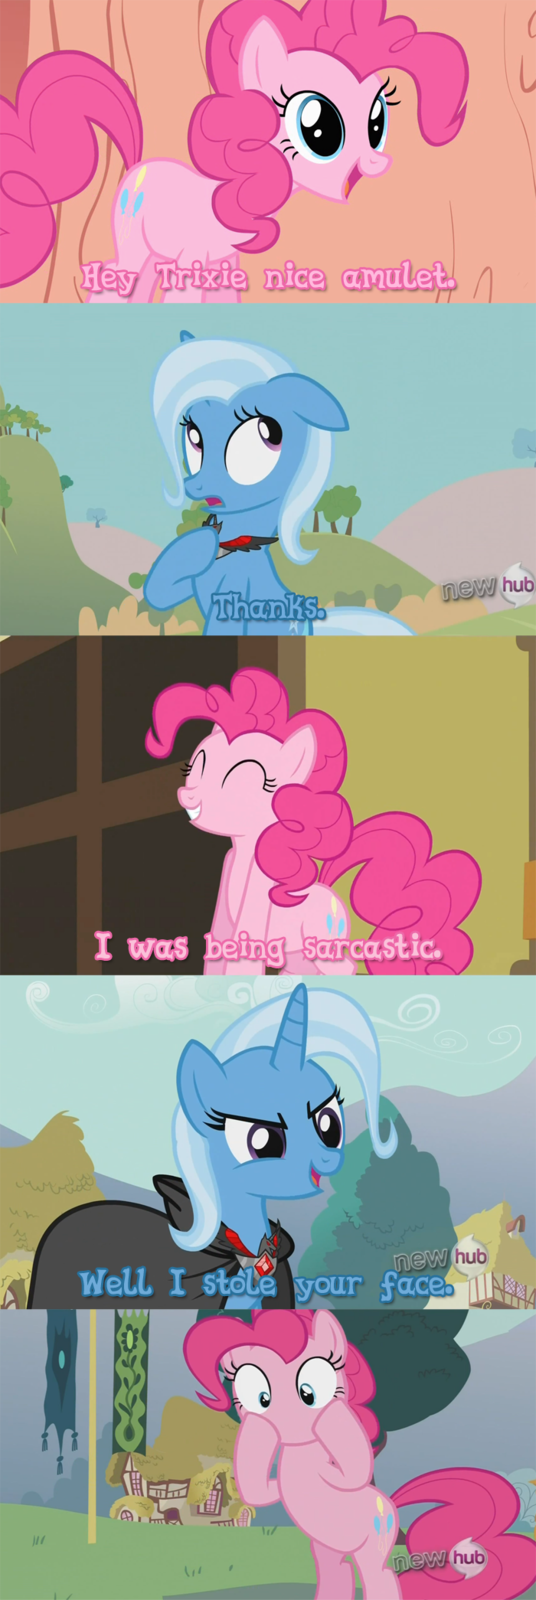 Hey Pinkie Pie, what can't breathe or eat cupcakes anymore? …your face!